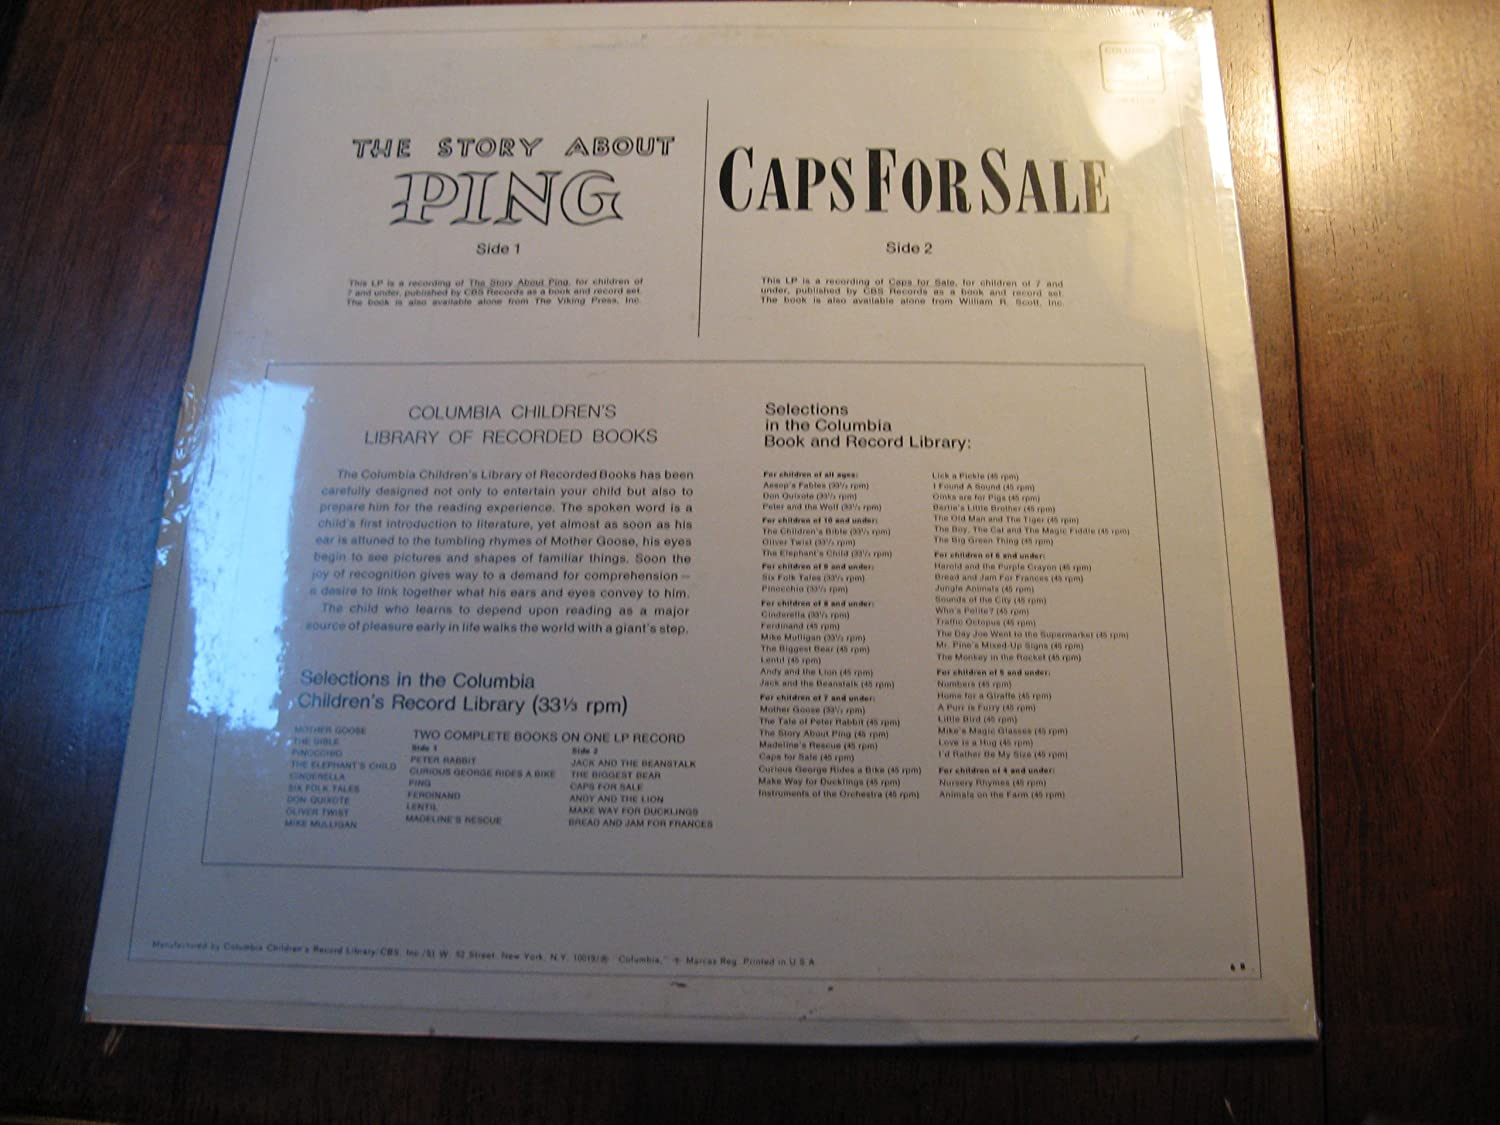 Amazon.com : Caps for Sale / The story of Ping - Columbia Childrens Library of Recorded Books (Vinyl 33 1/3 RPM) : Other Products : Everything Else